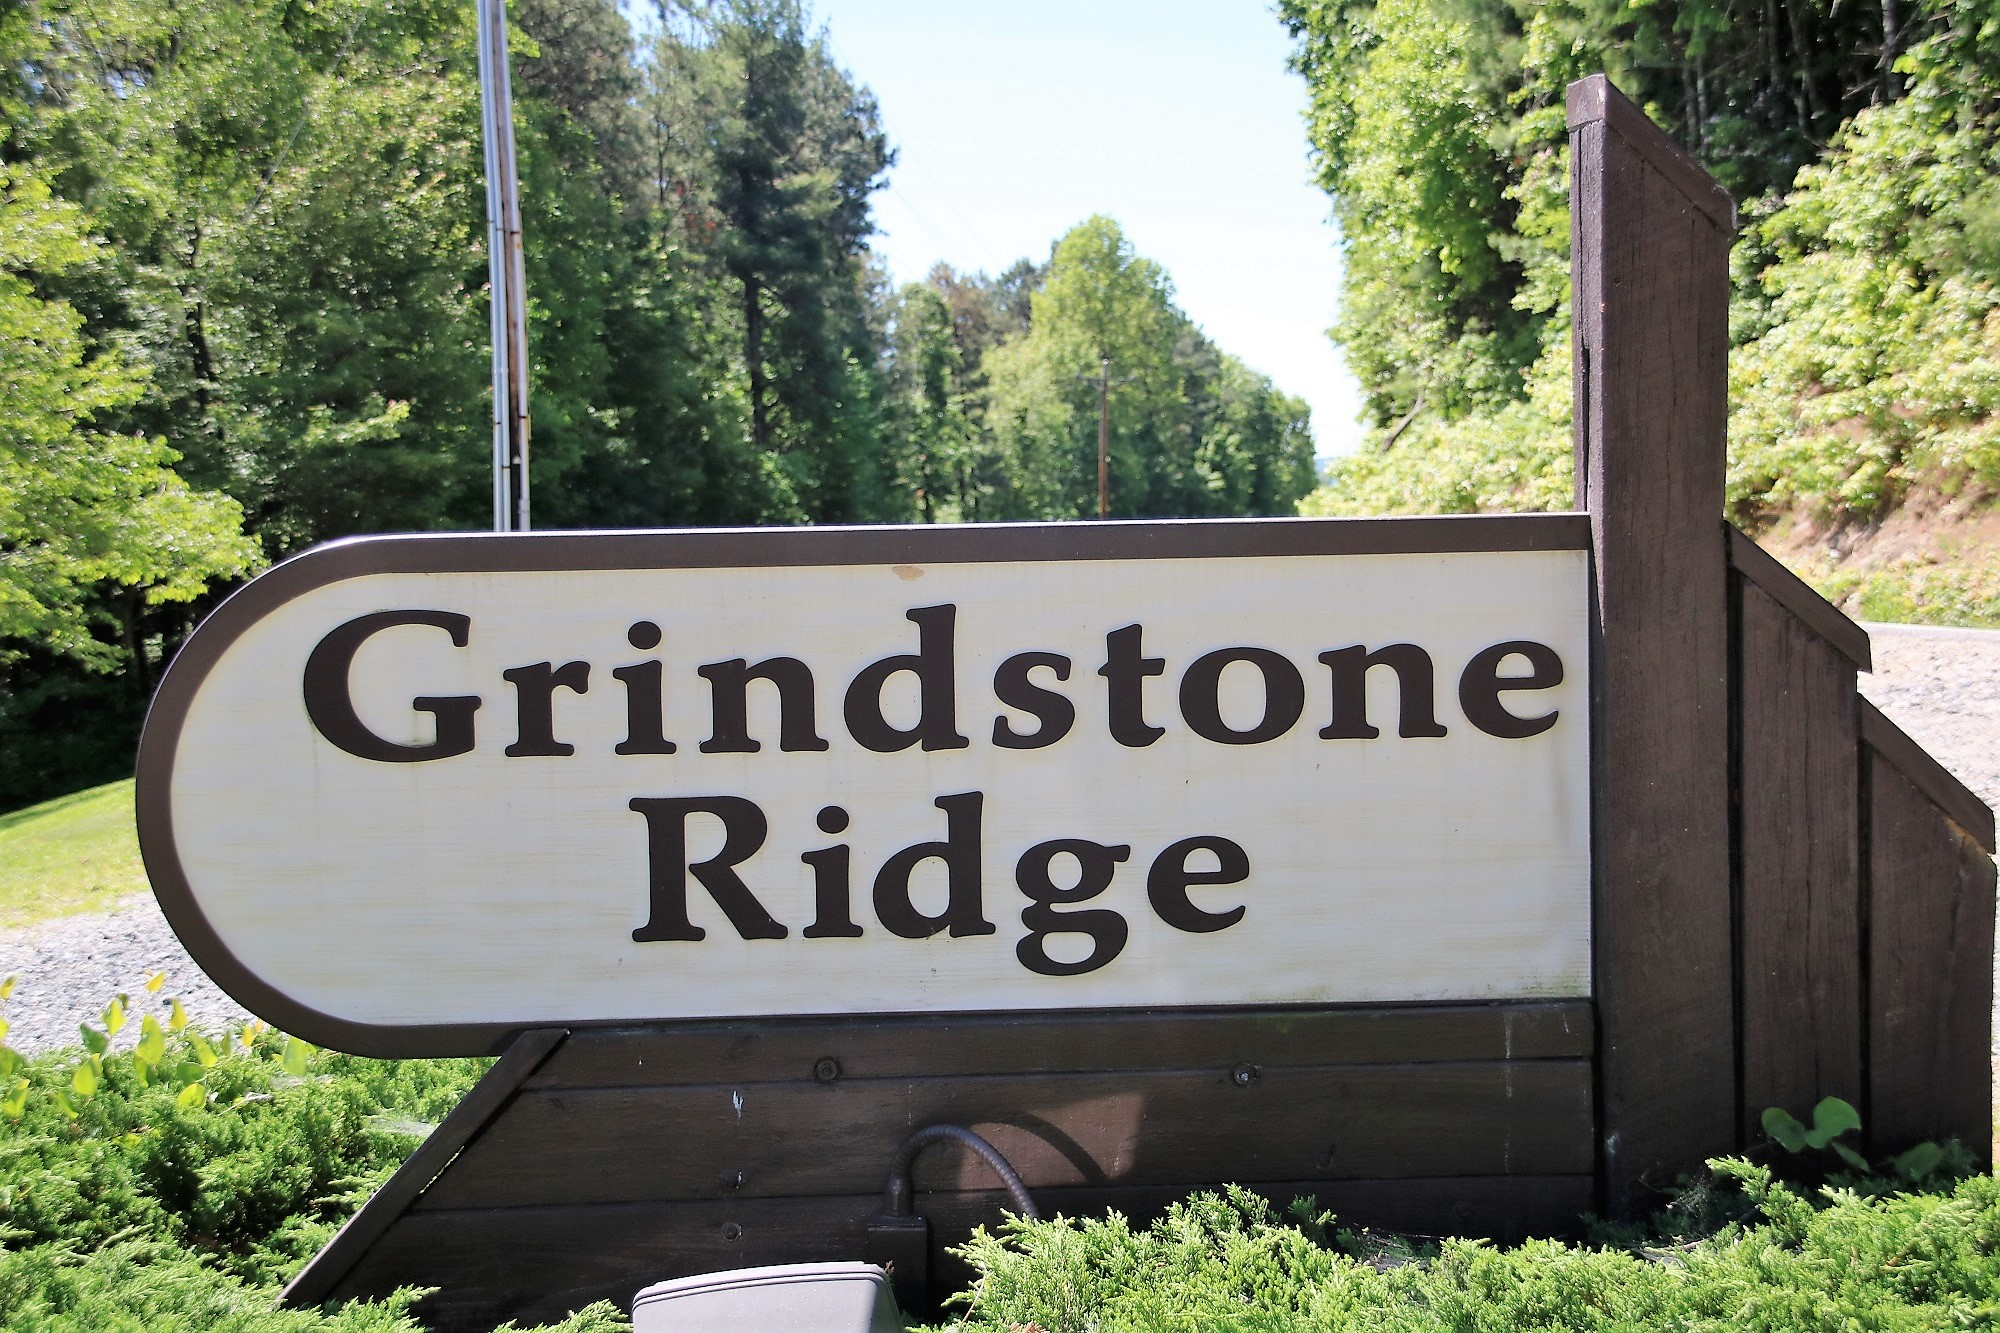 GRINDSTONE RIDGE TRACT 64 NEAR THE BLUE RIDGE PARKWAY